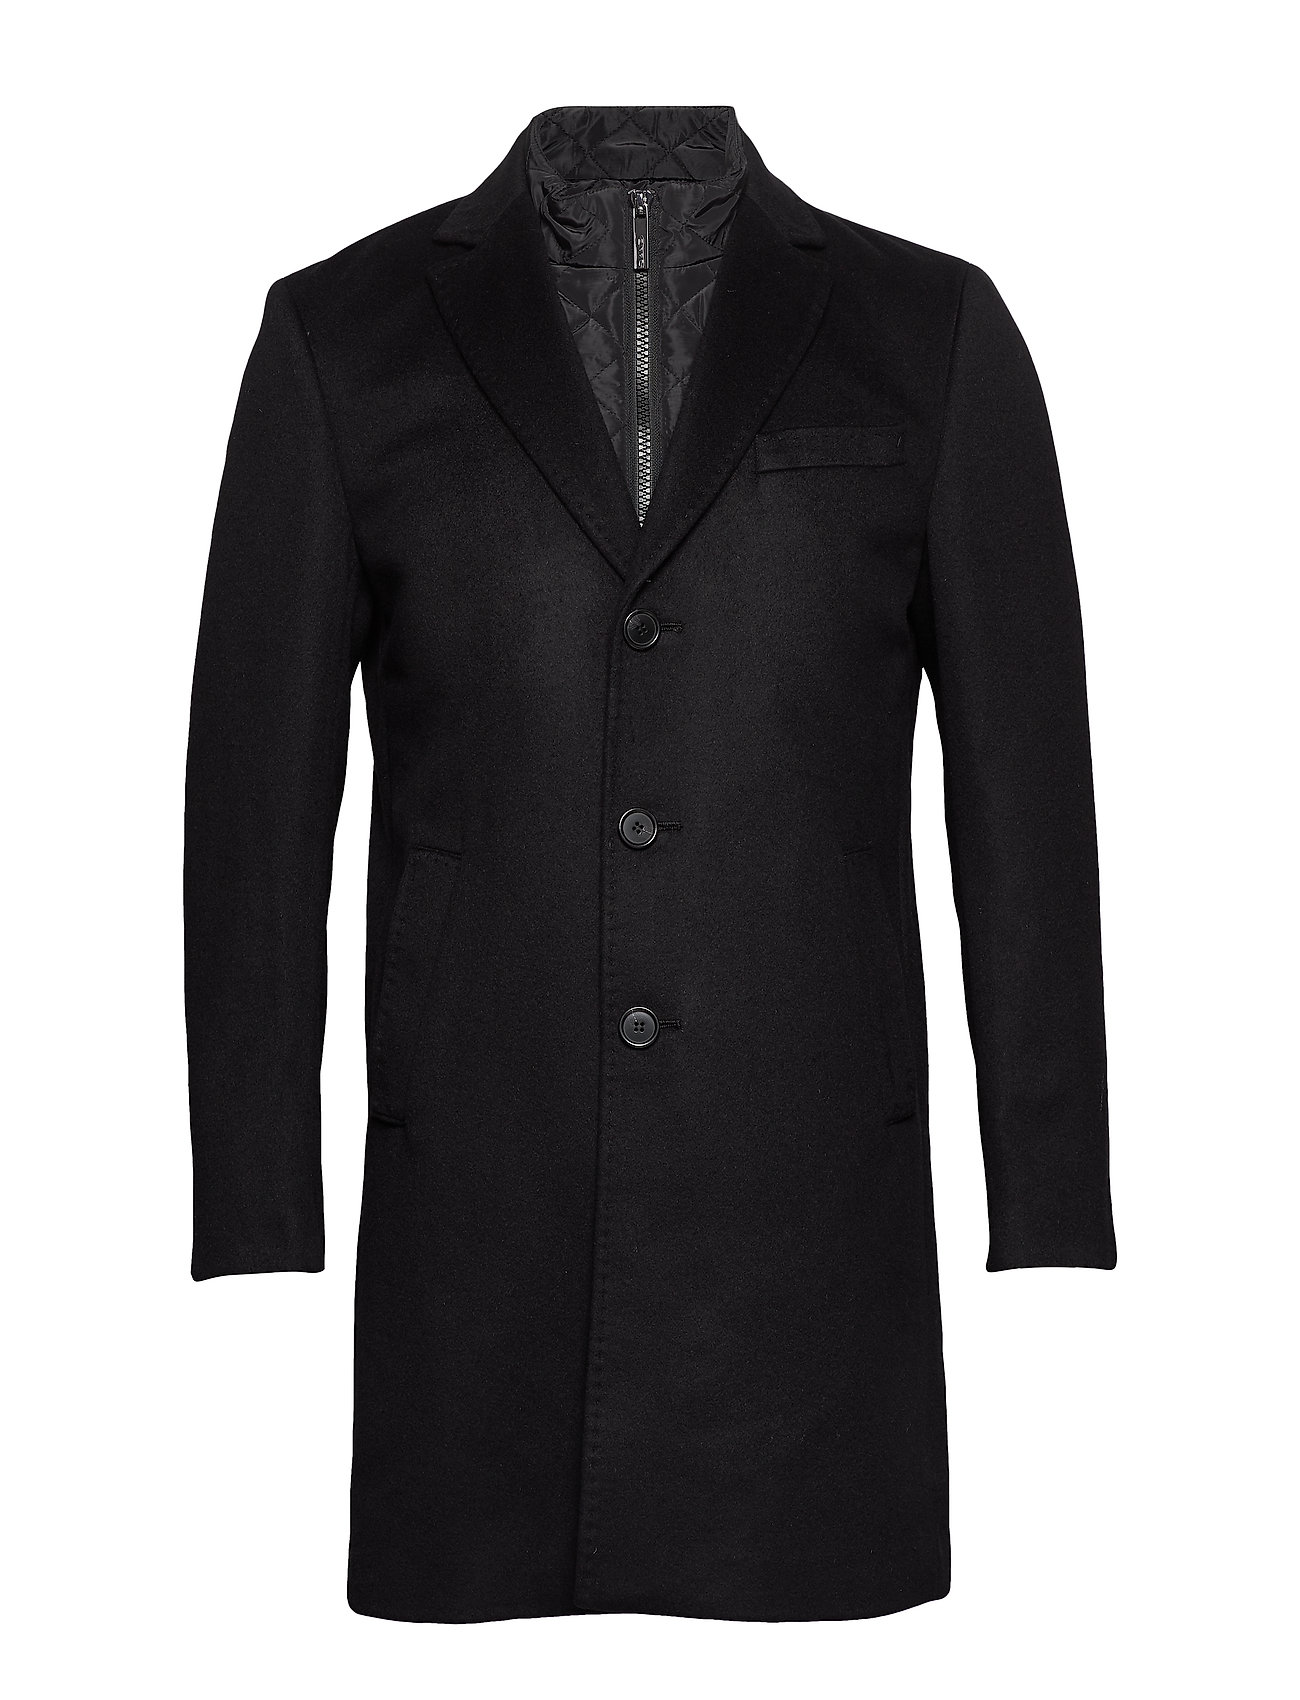 SAND Cashmere Coat - Sultan Tech - BLACK